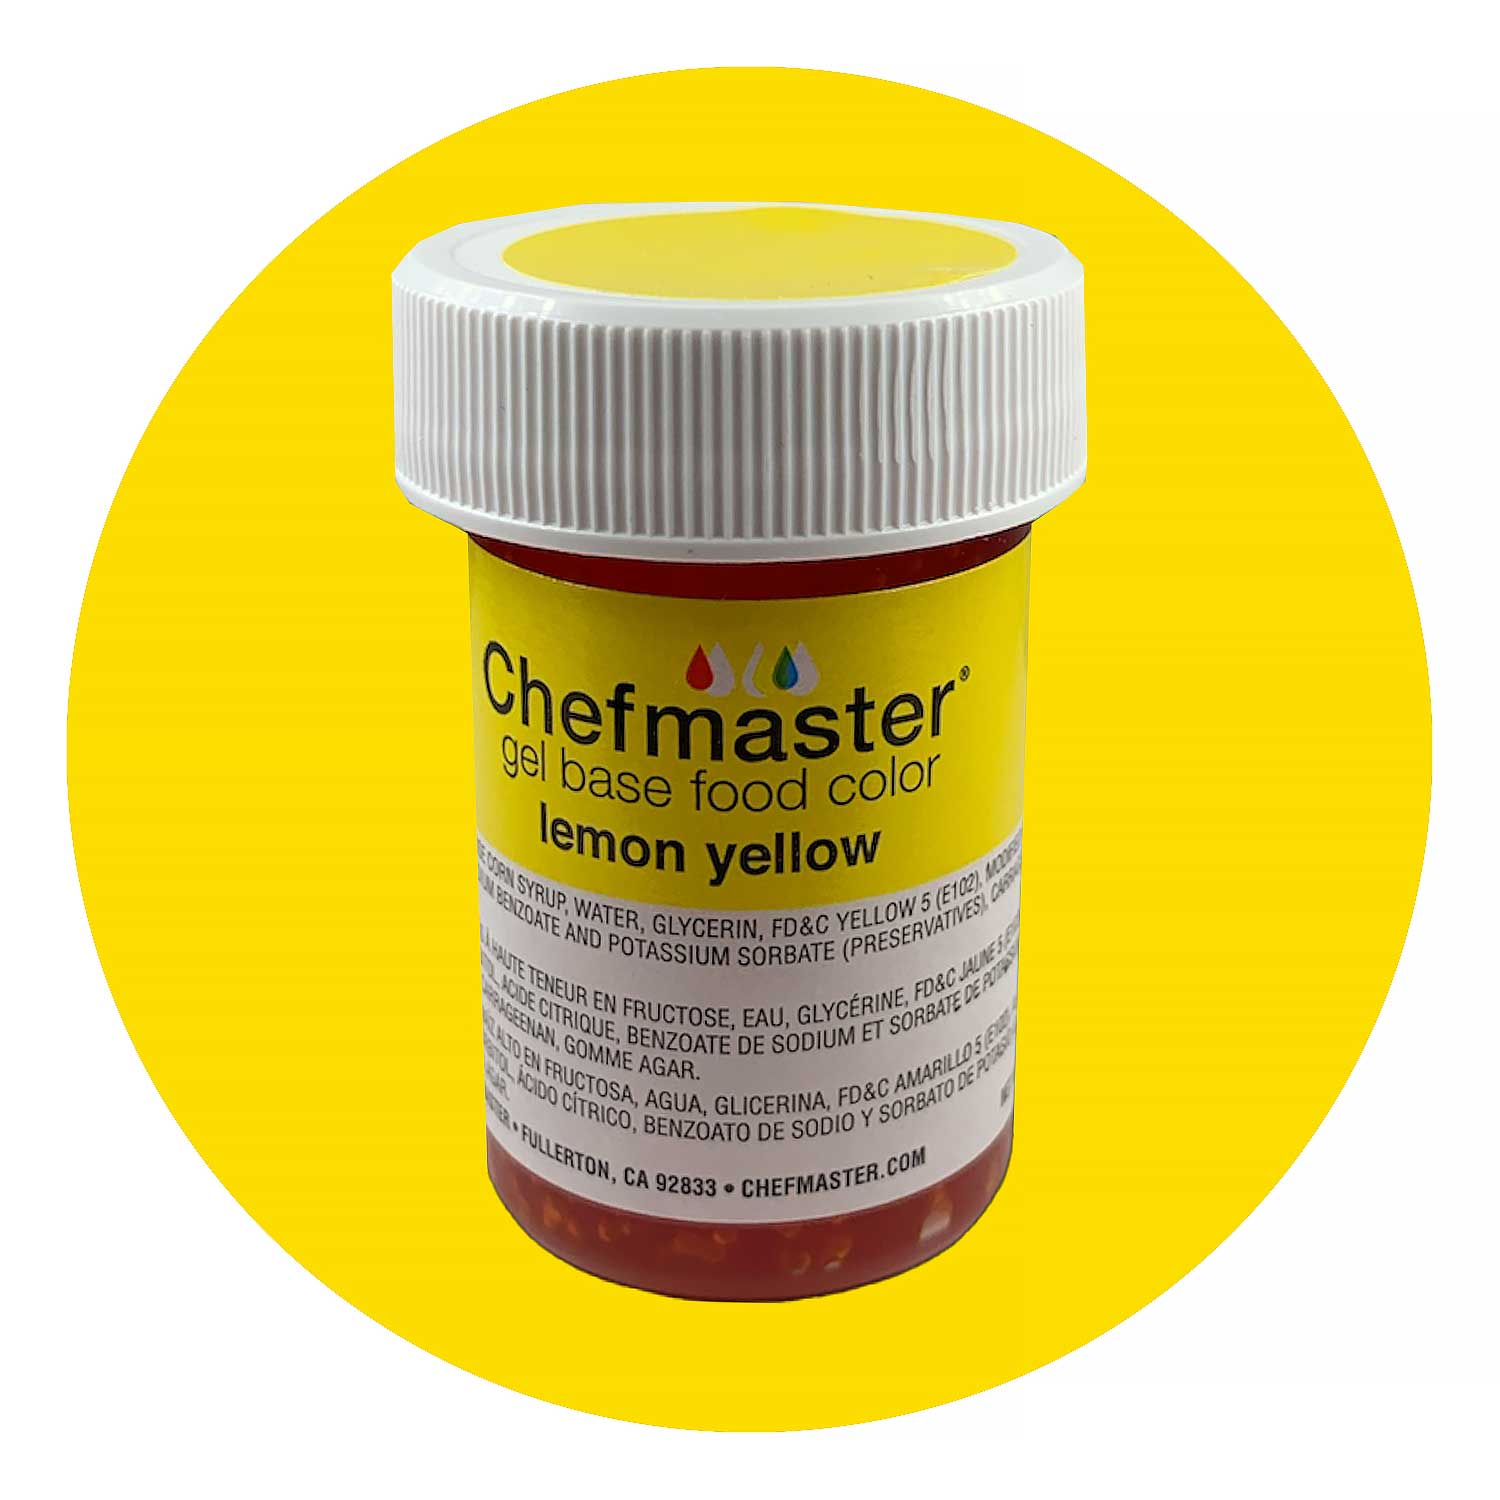 Lemon Yellow Chefmaster Food Color Gel (Old Item # 41-3302)